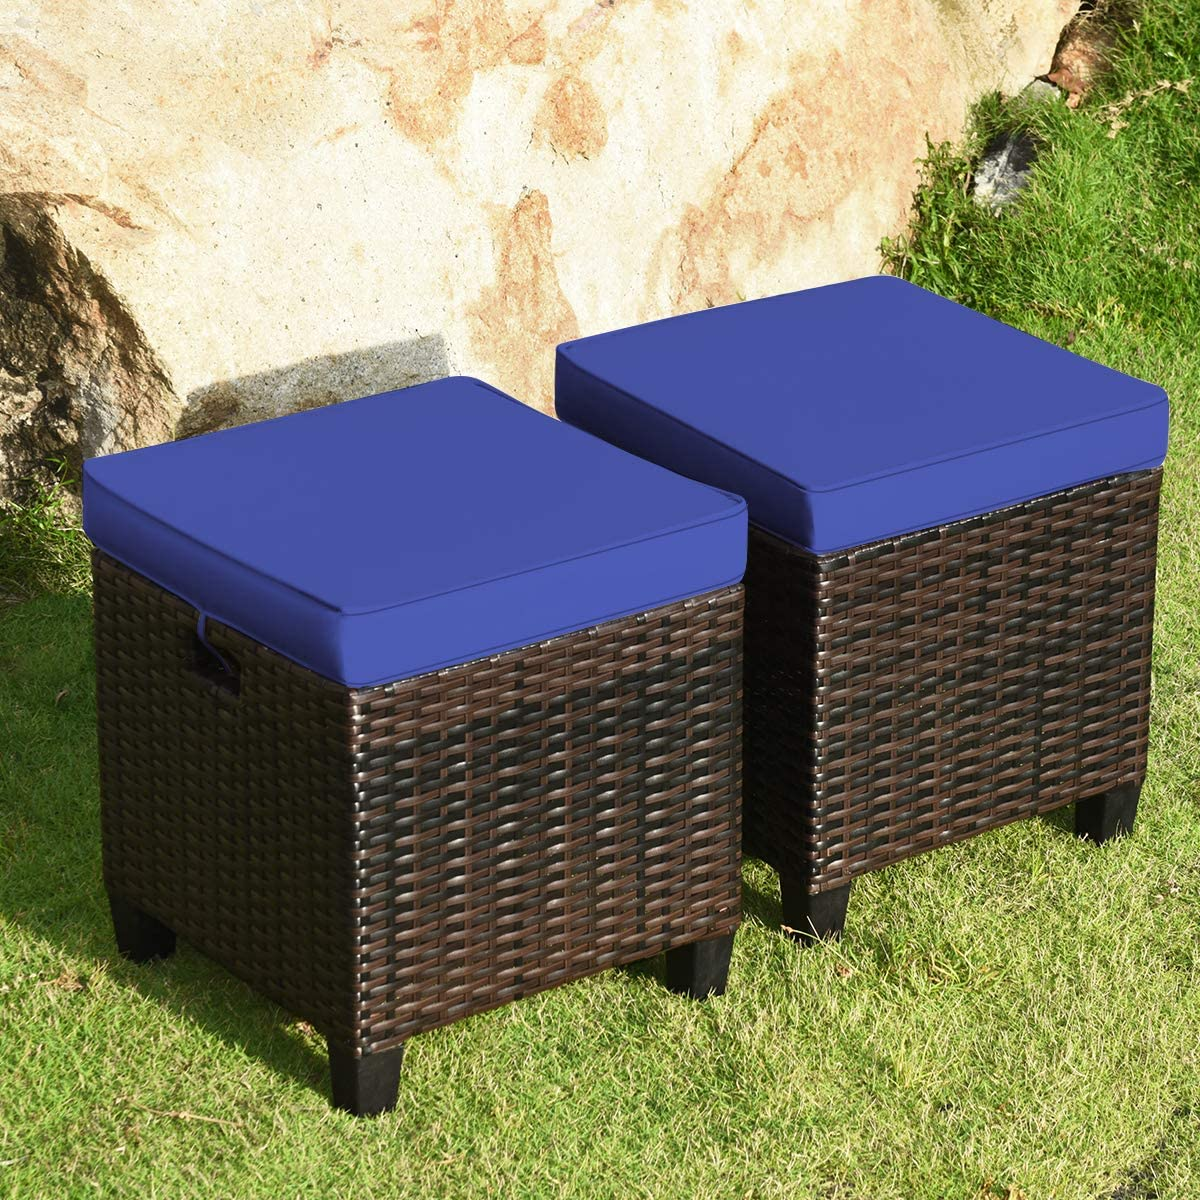 Happygrill 2pcs Patio Ottoman Set Outdoor Rattan Wicker Ottoman Seat with Removable Cushions Patio Furniture Footstool Footrest Seat